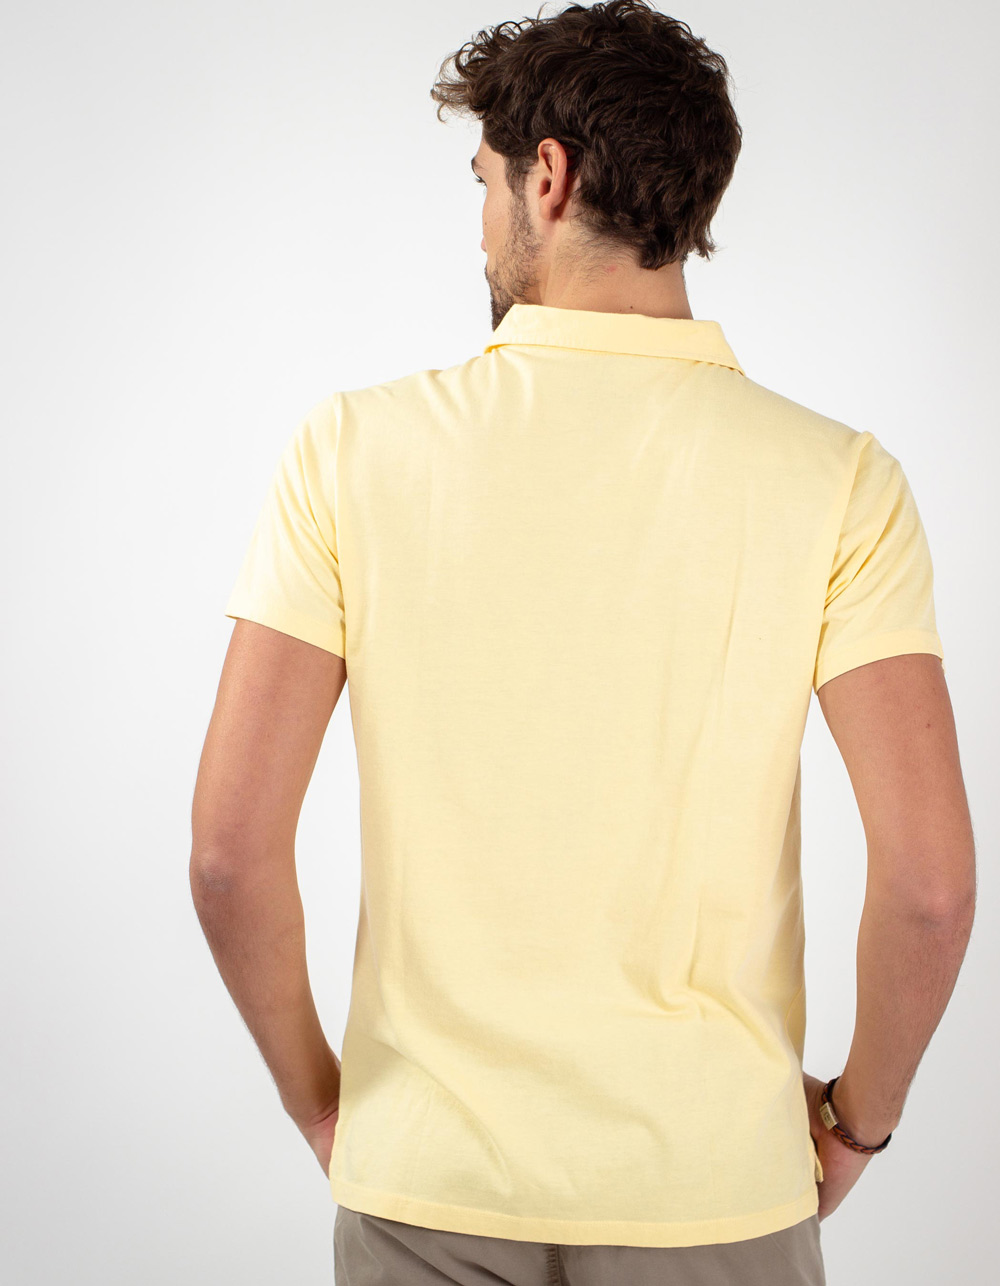 Yellow pocket polo shirt - Backside